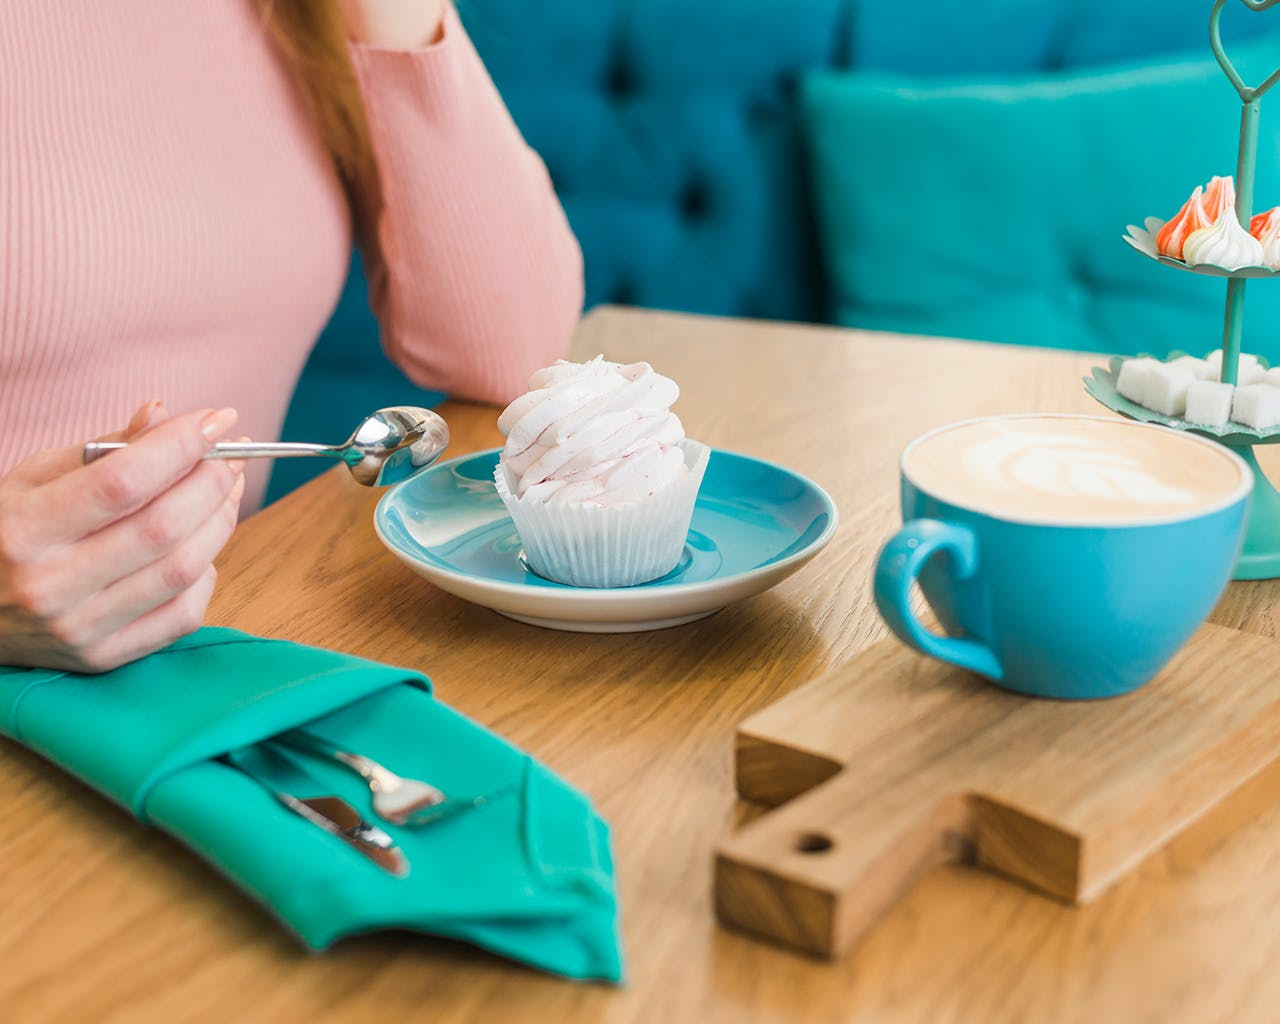 The Benefits Of Low Calorie Sweeteners Over Sugar, According To Those Who Switched